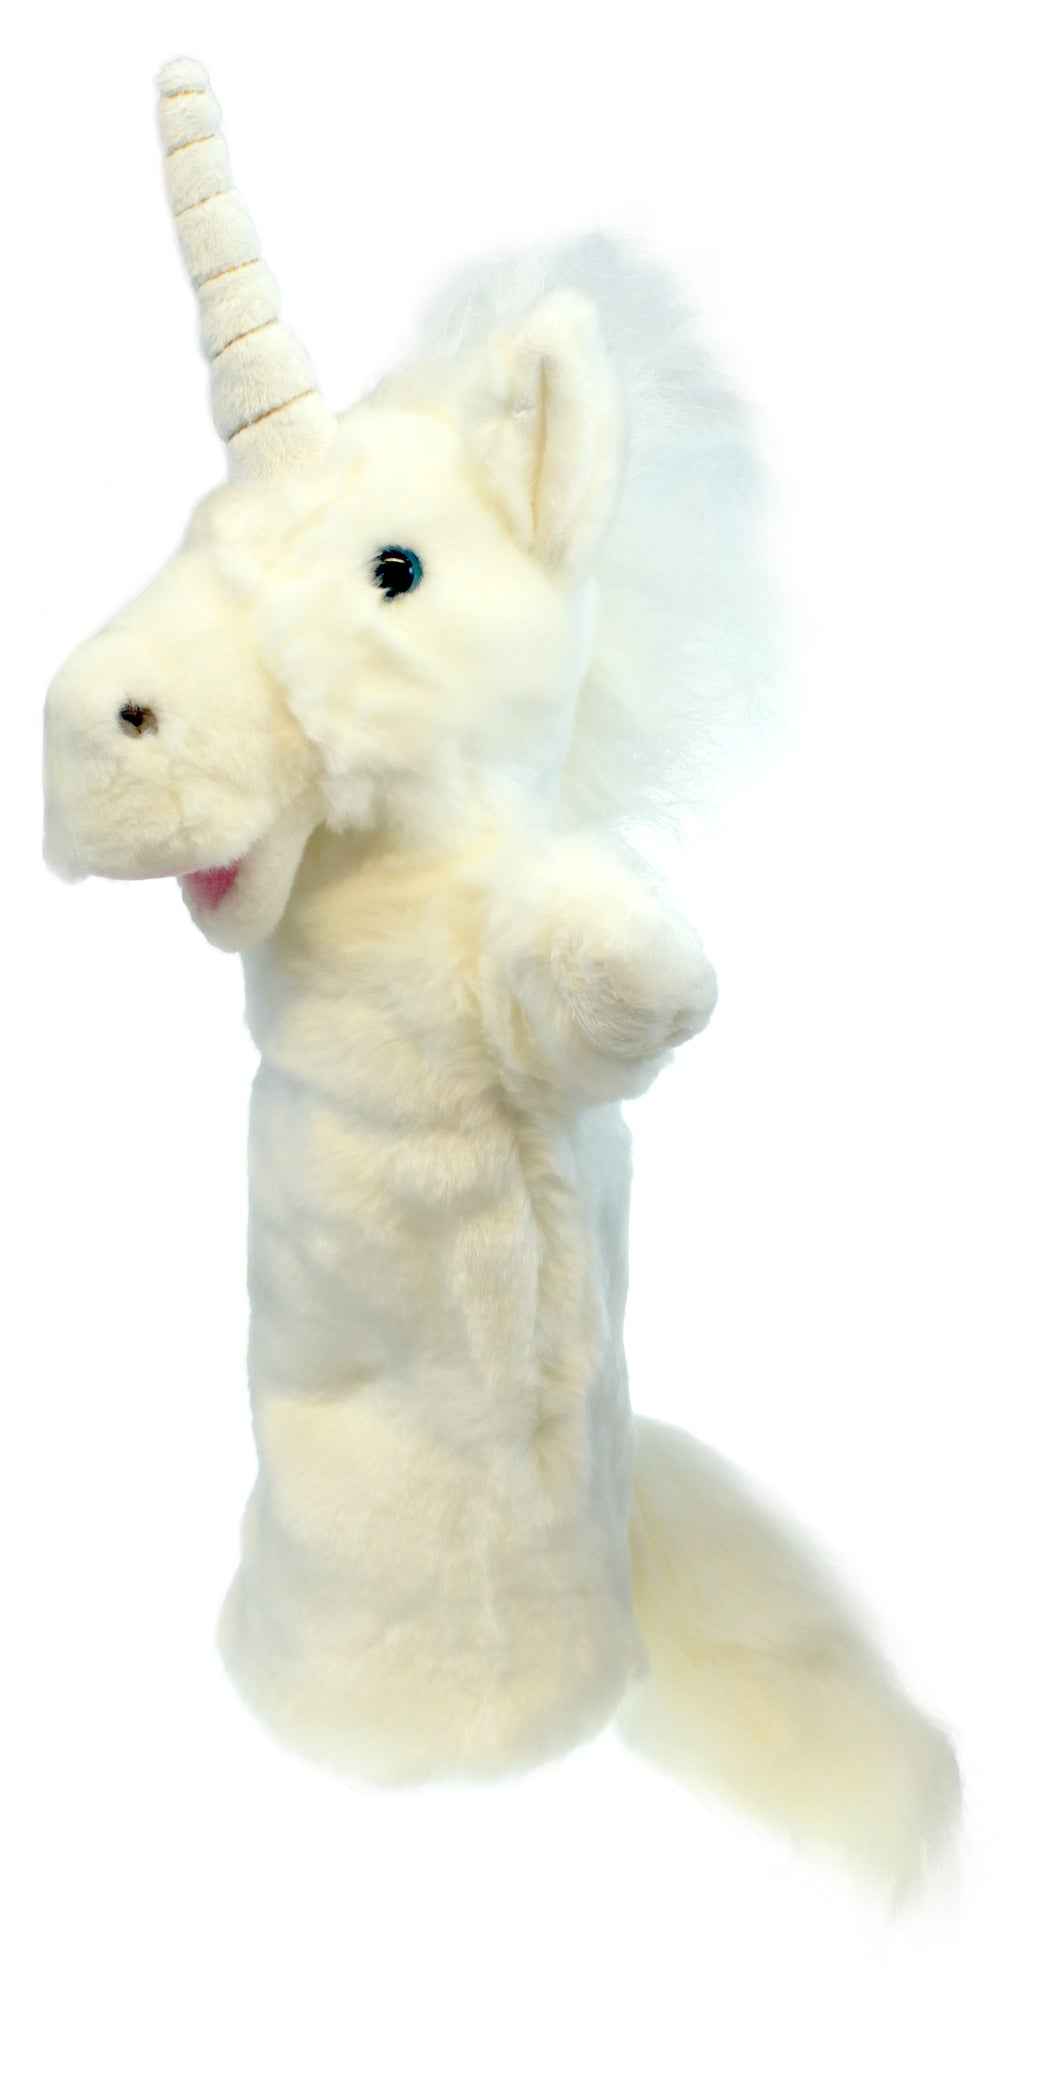 P397-PC006049-marionnette-Licorne-The-Puppet-Company-Long-Sleeved-Glove-Puppets